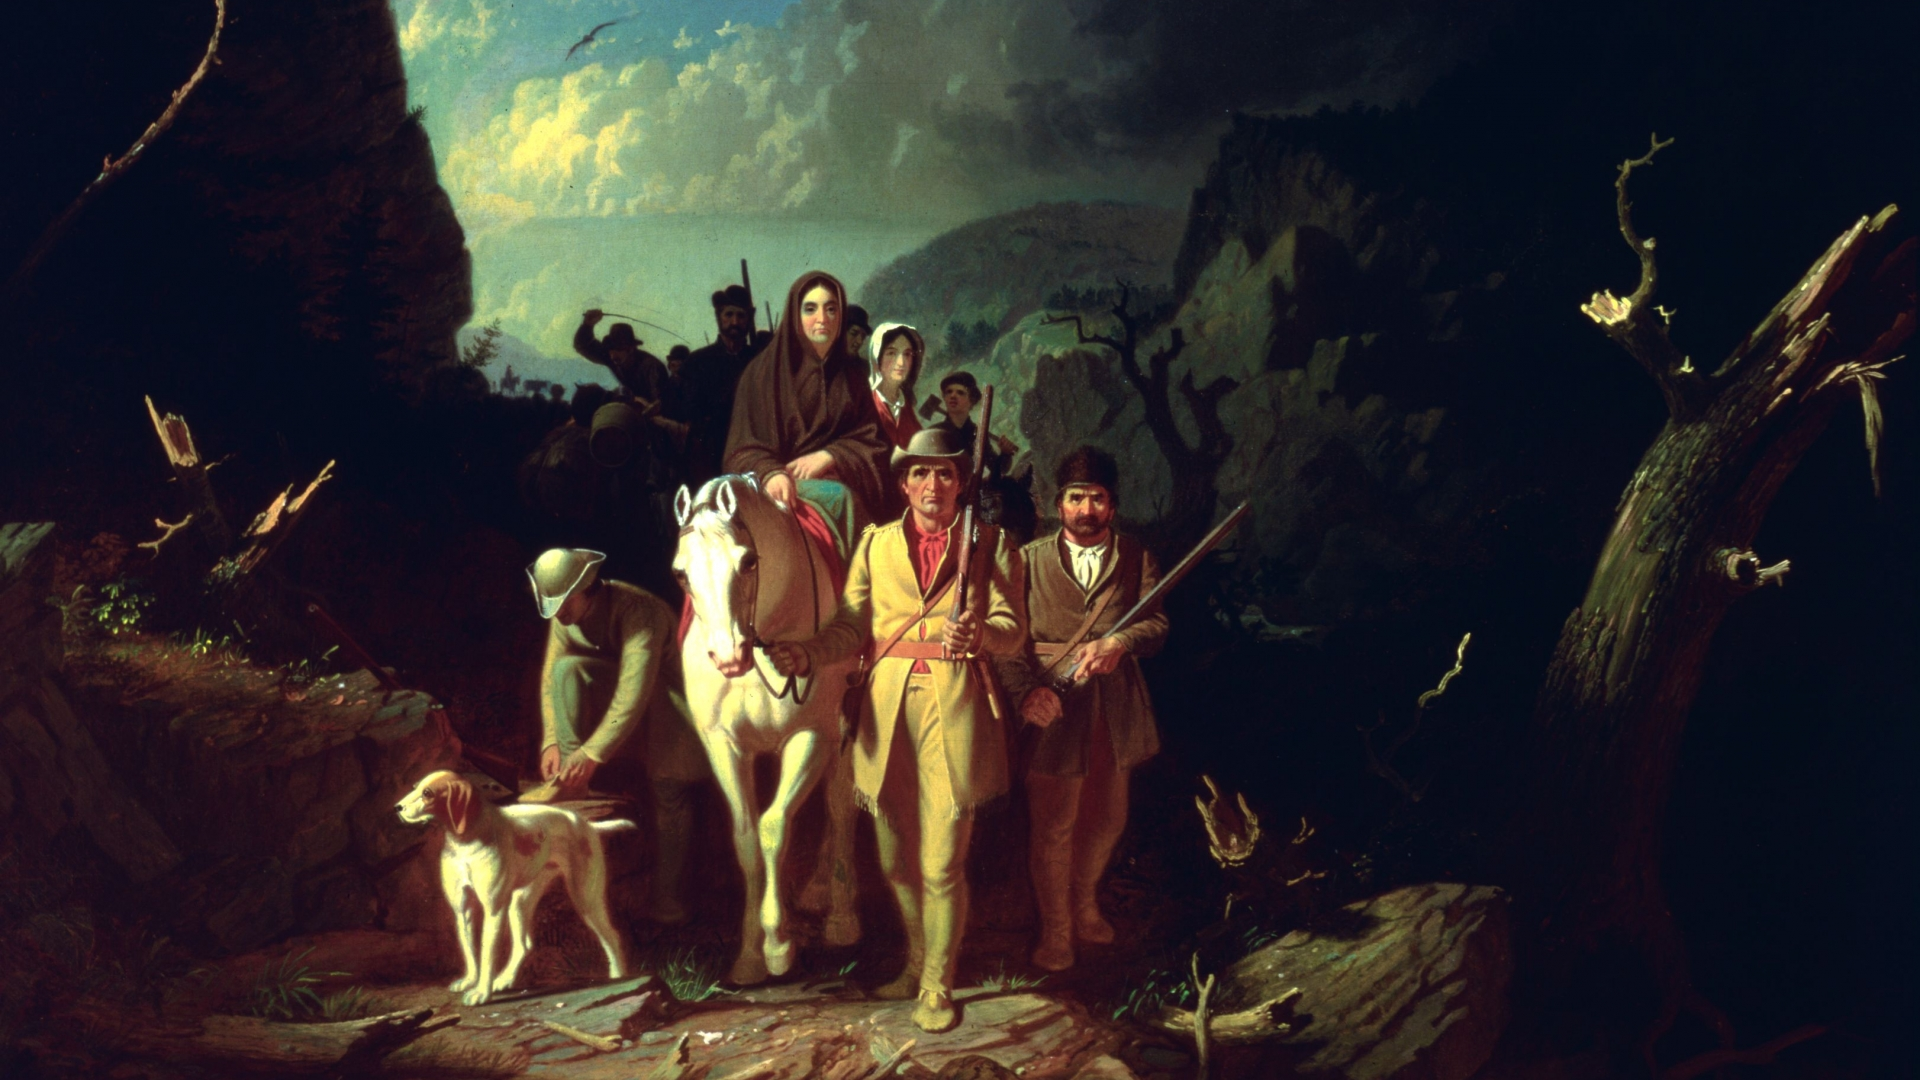 Daniel Boone leading a group of settlers, 1773. (Credit: MPI/Getty Images)